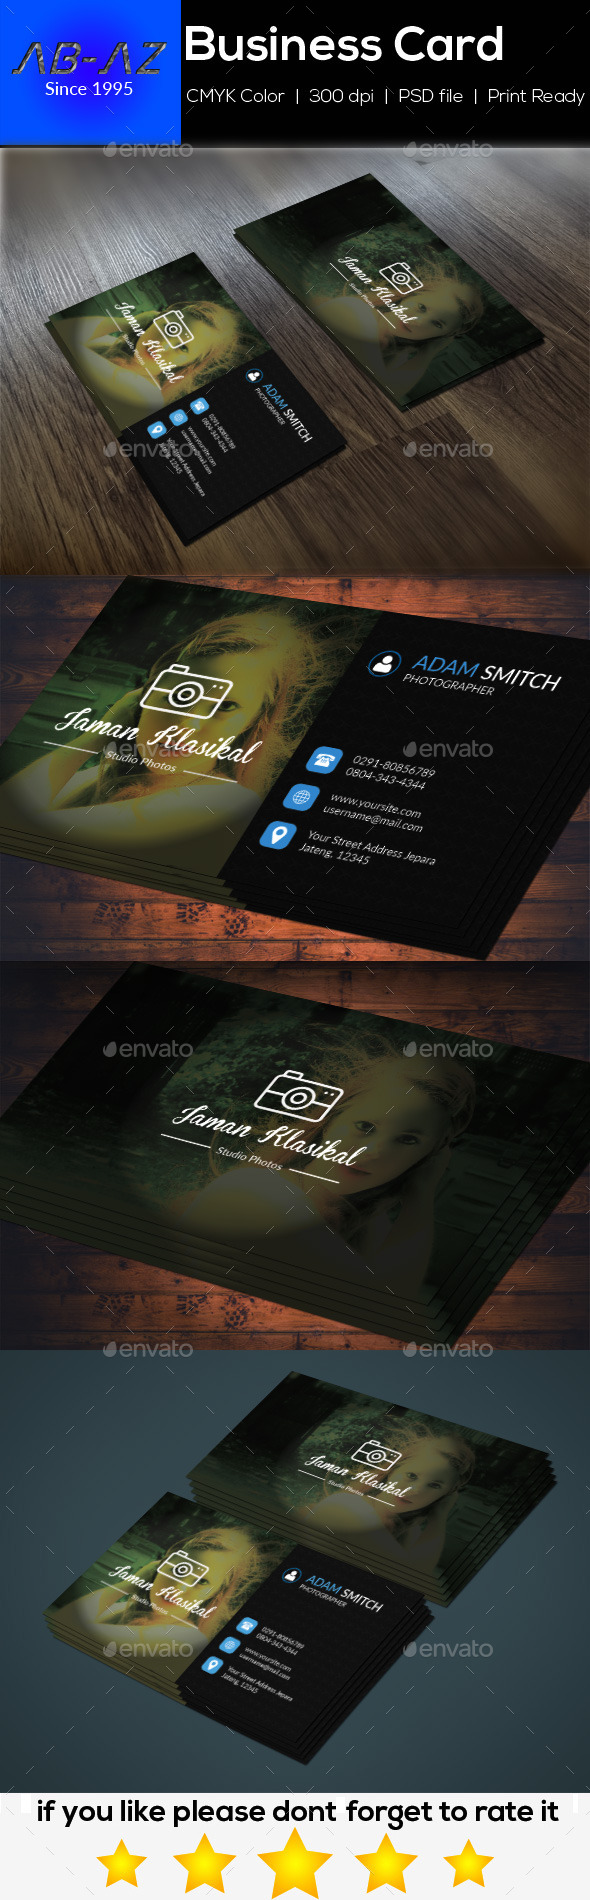 Photography Business Card V1 - Business Cards Print Templates